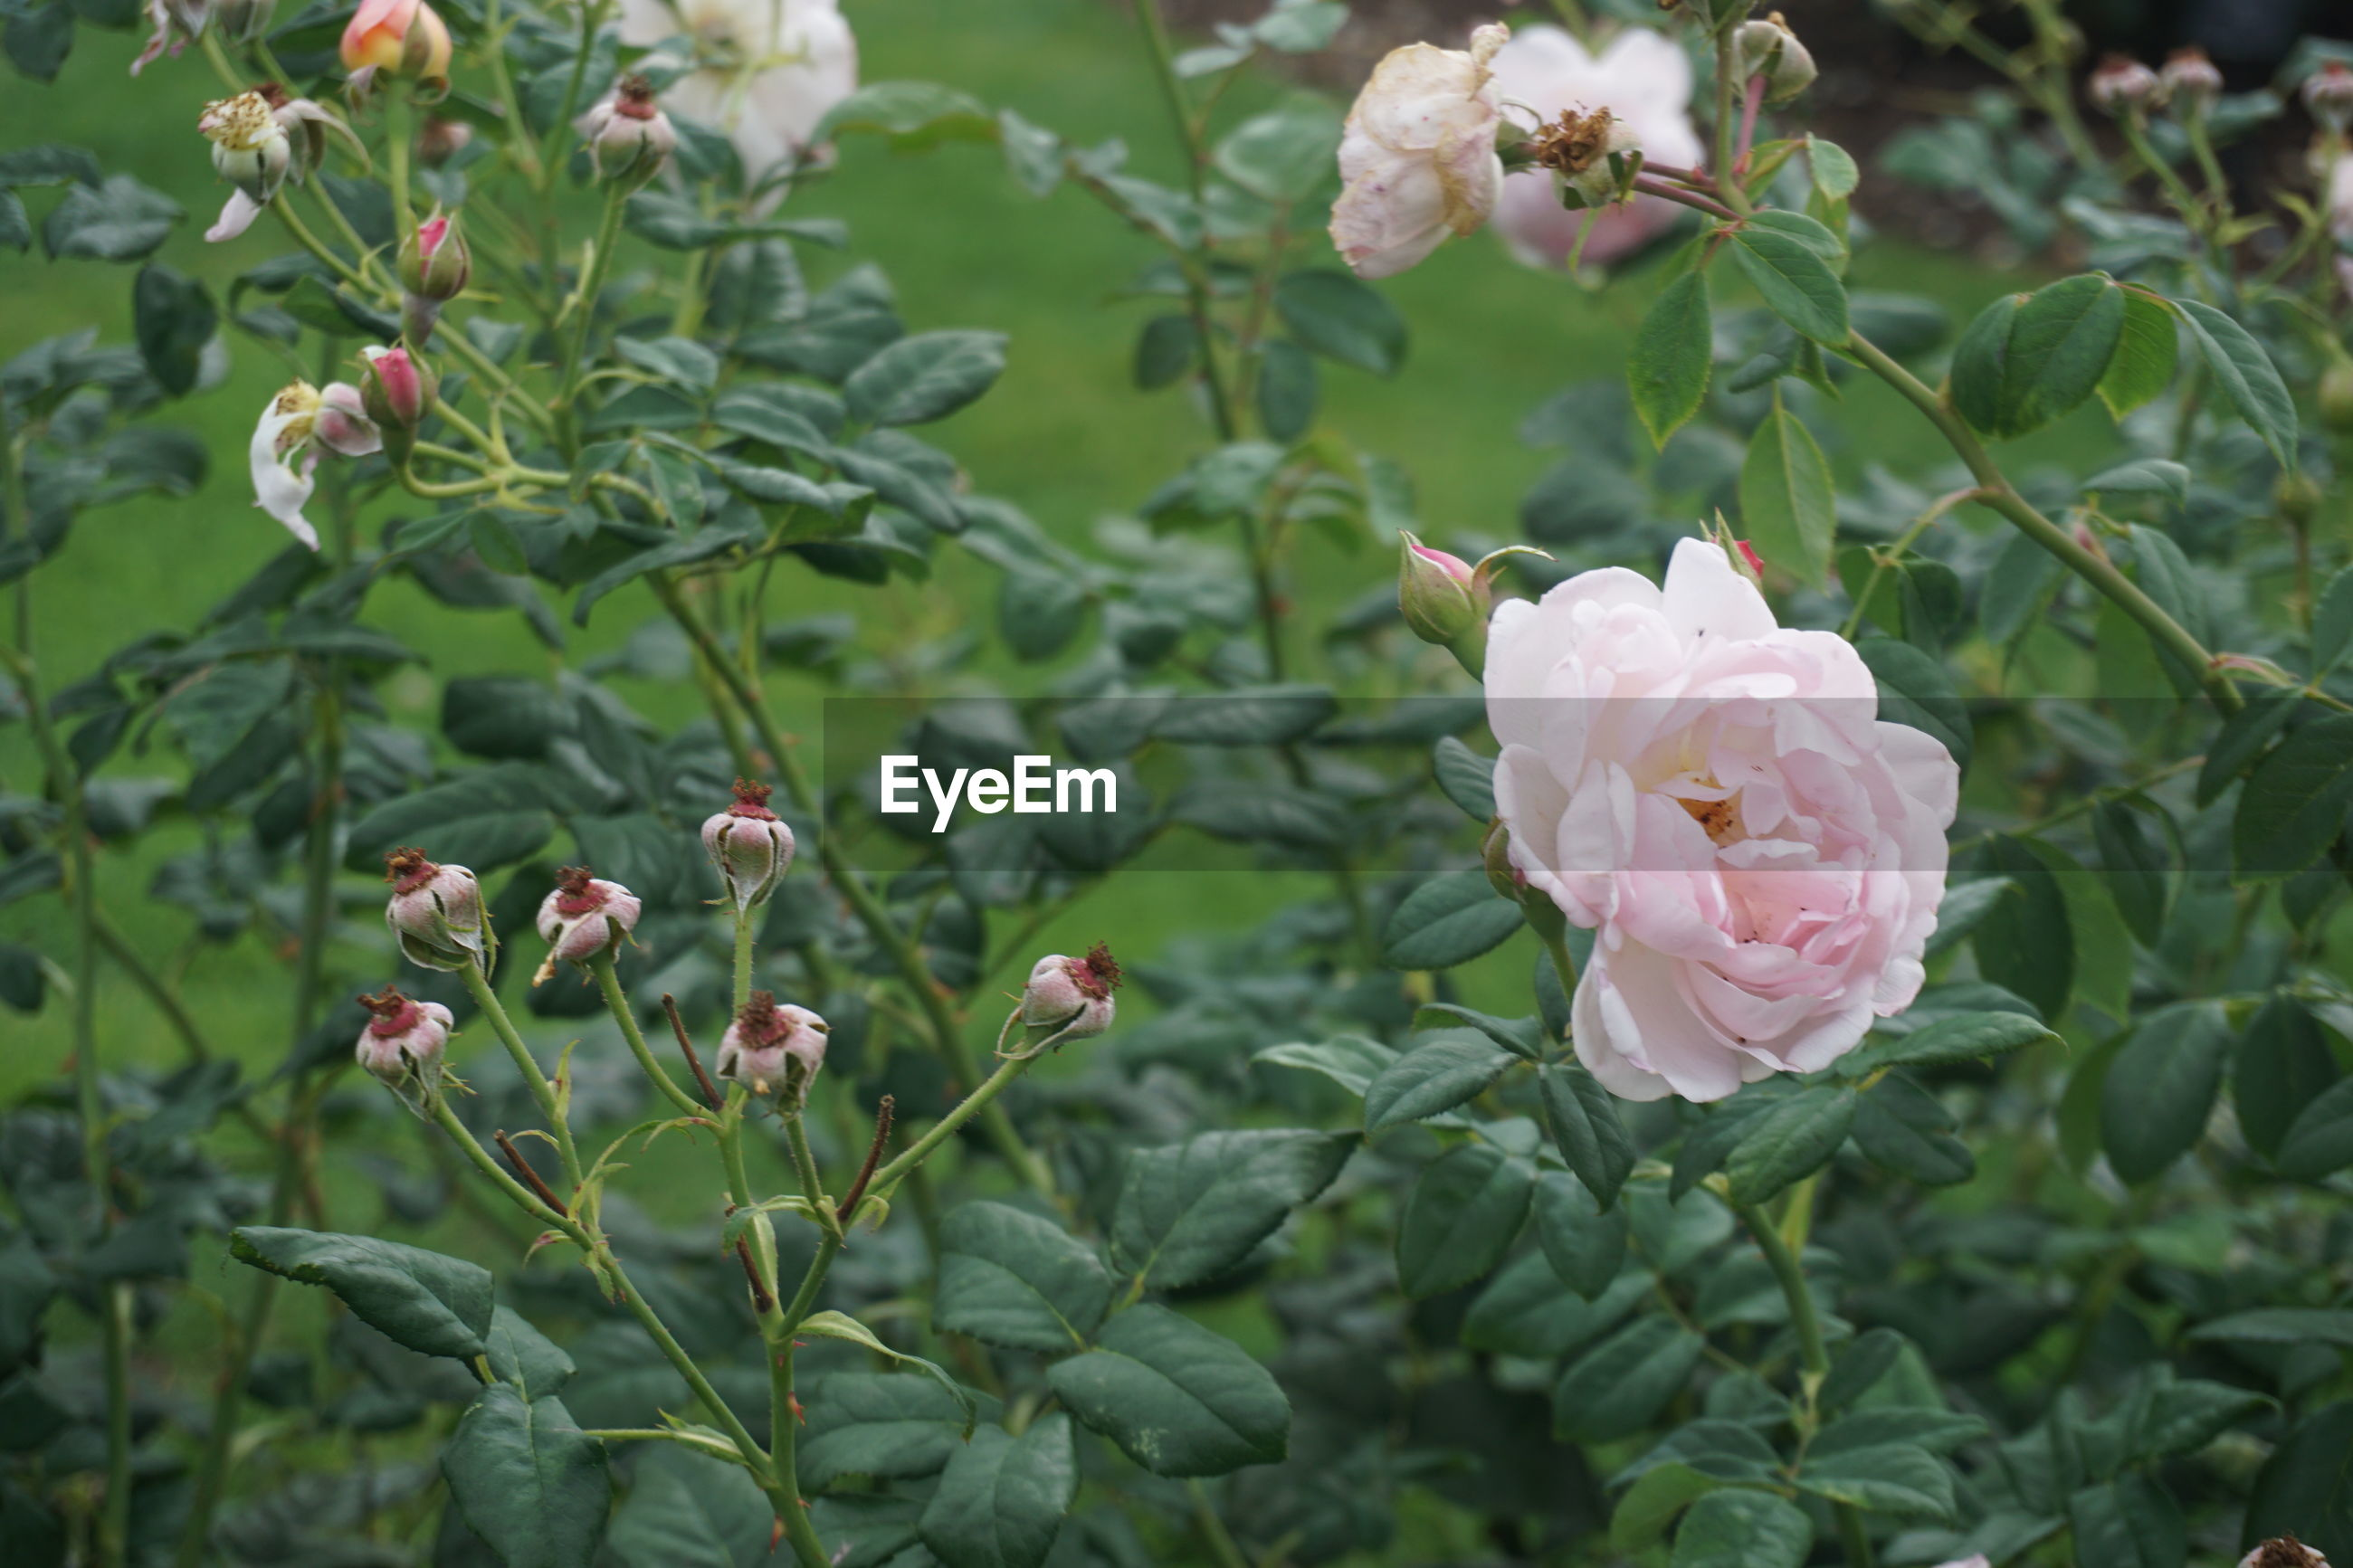 CLOSE-UP OF PINK ROSE IN PLANT